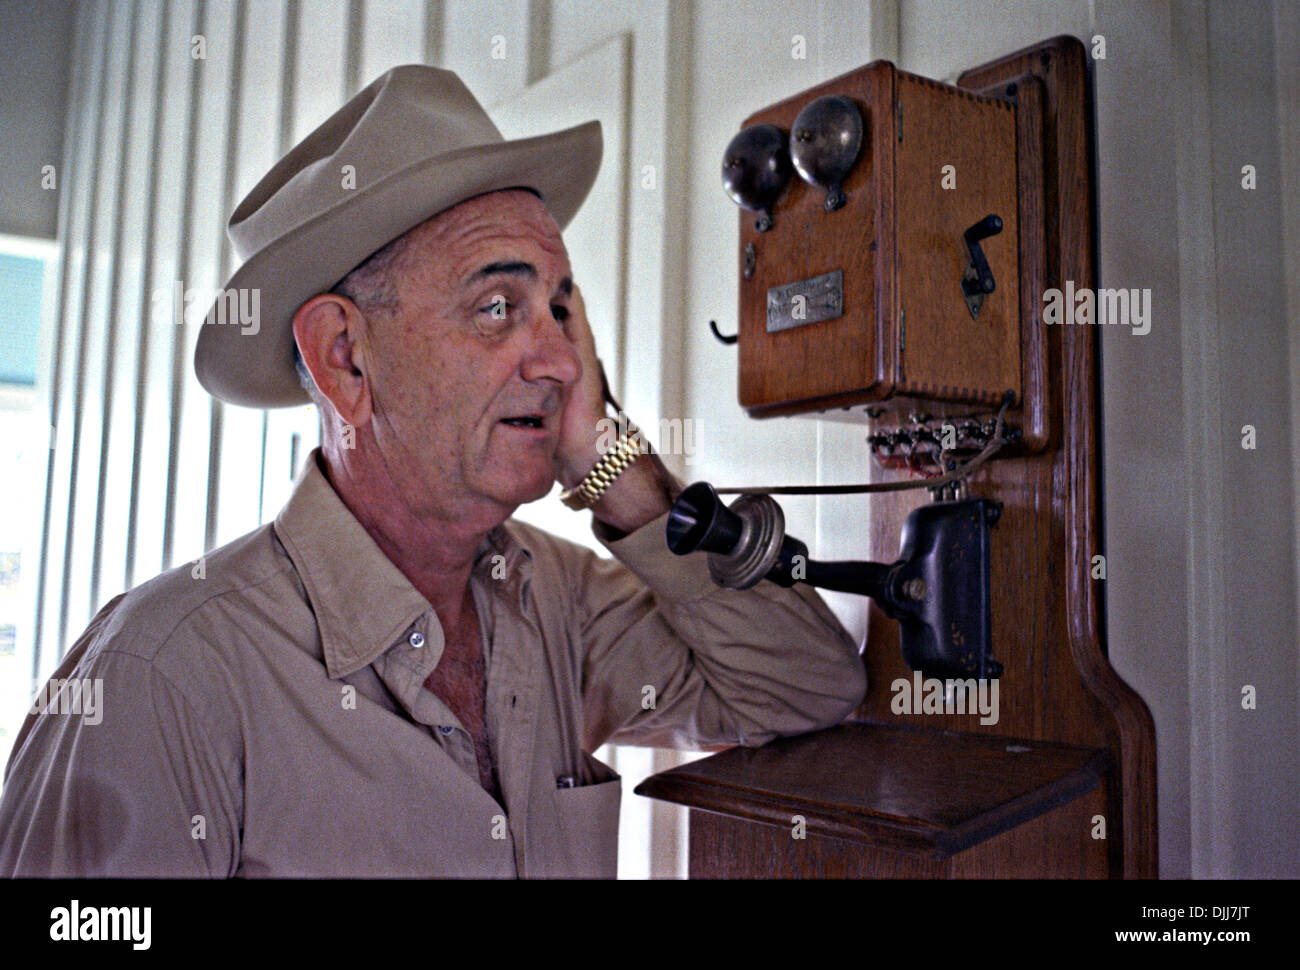 US President Lyndon B. Johnson in a cowboy hat talking on an antique  telephone at 852c72c7775